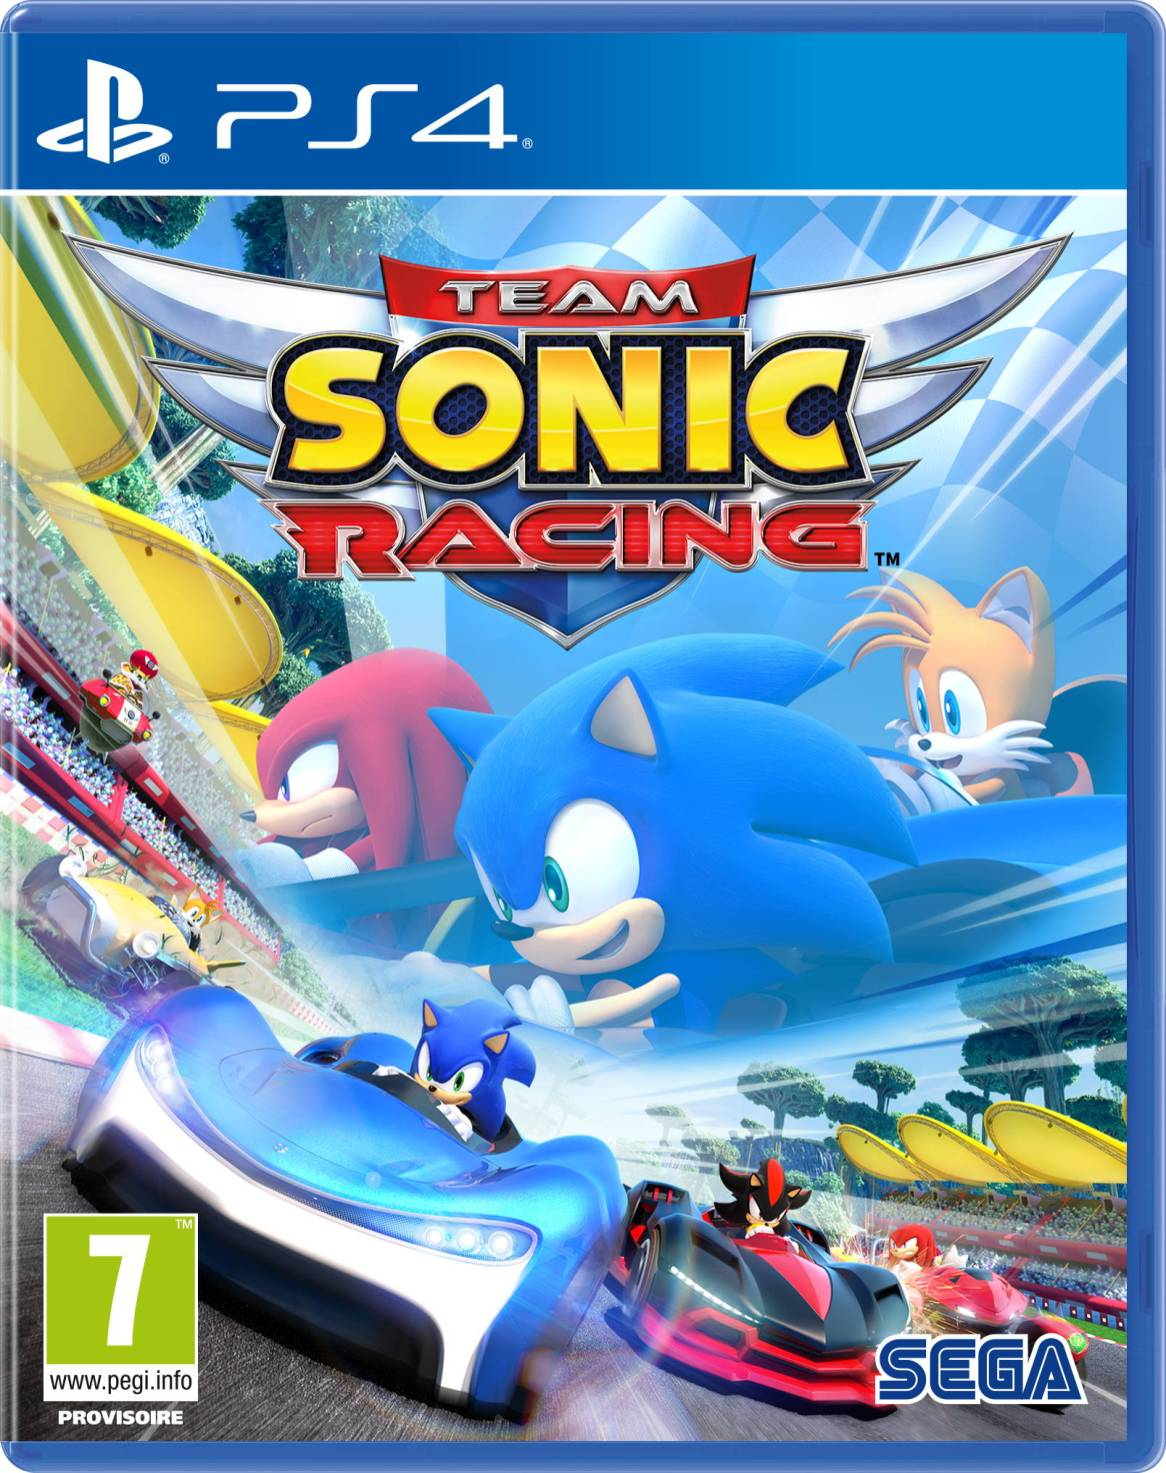 teamsonicteam_images_0006